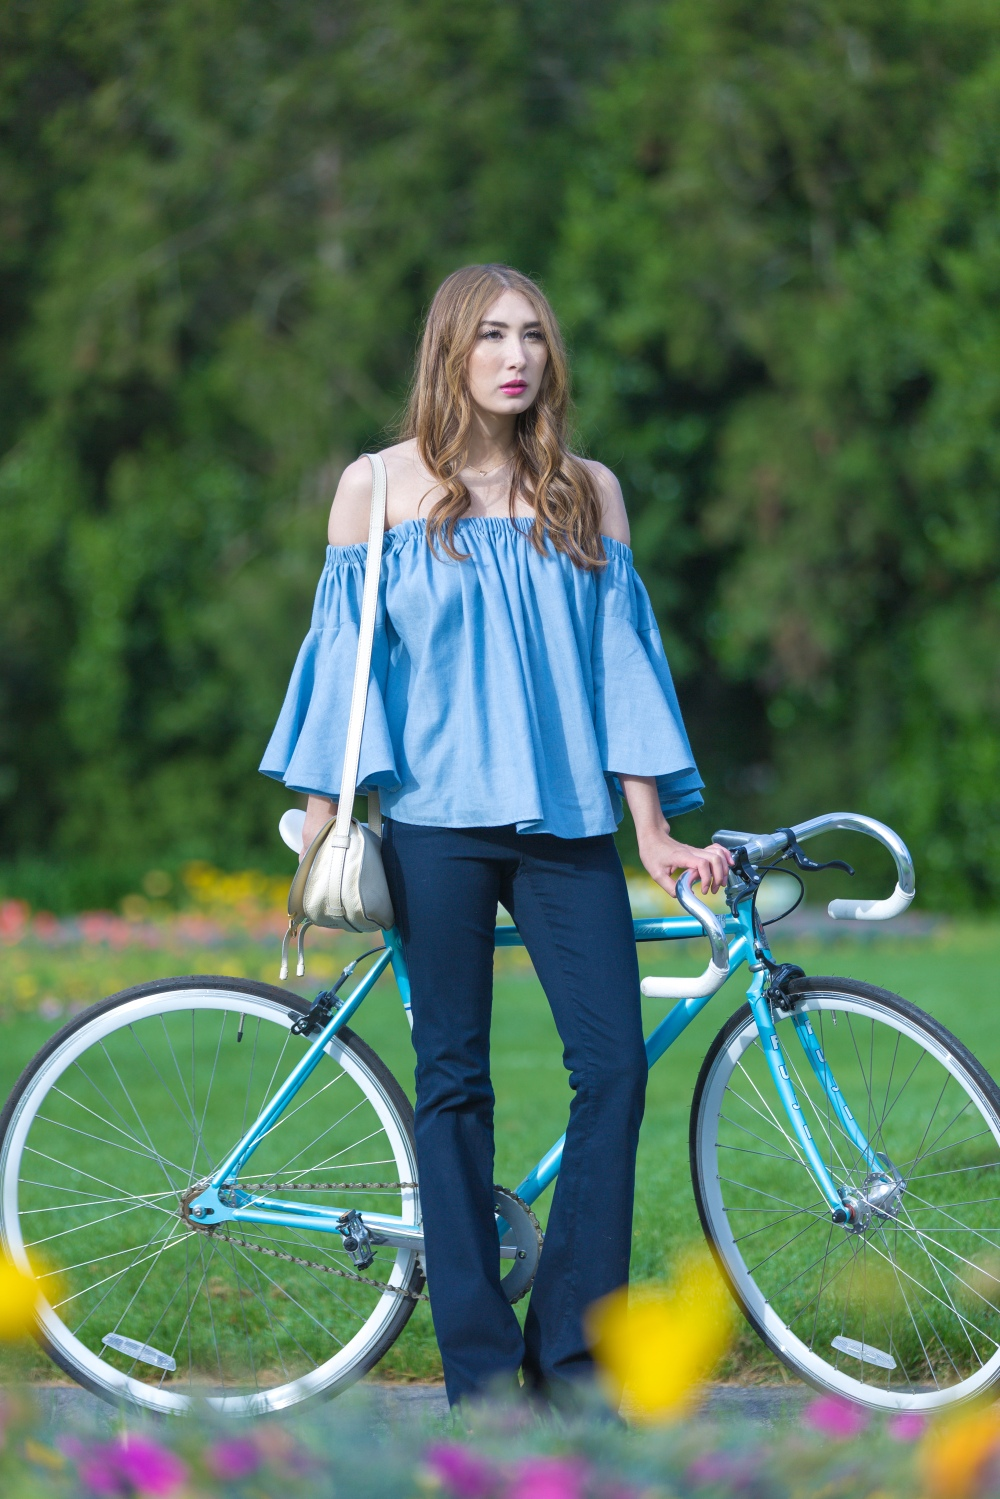 Alyssa Nicole Bridget Blouse Biking In San Francisco Golden Gate Park 4